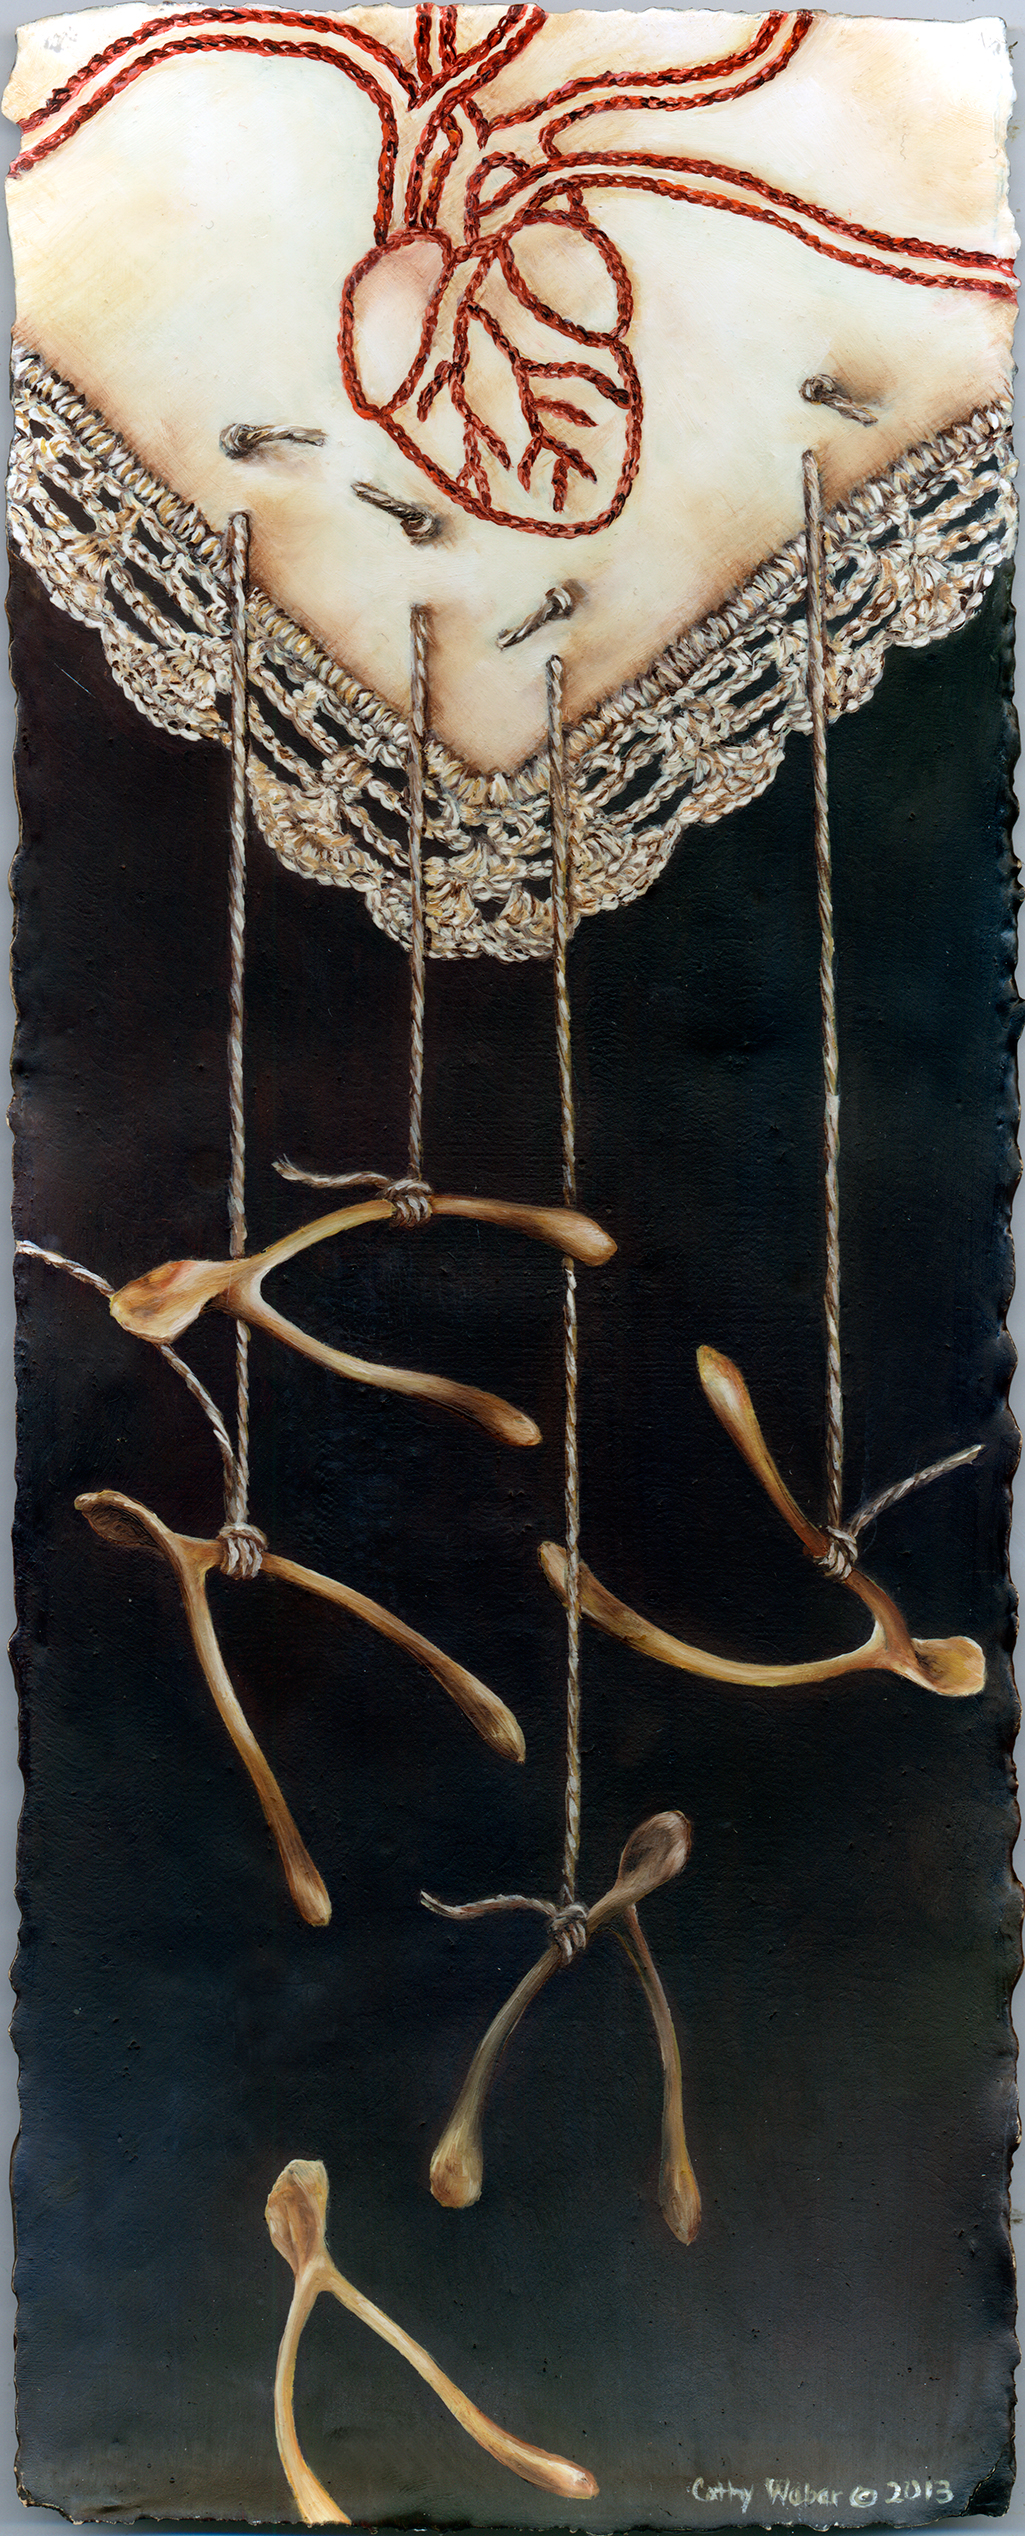 cathy weber - art - painting - woman - oil - montana - painting - oil - botanical - heart - lace -wishbone - embroidery - oil